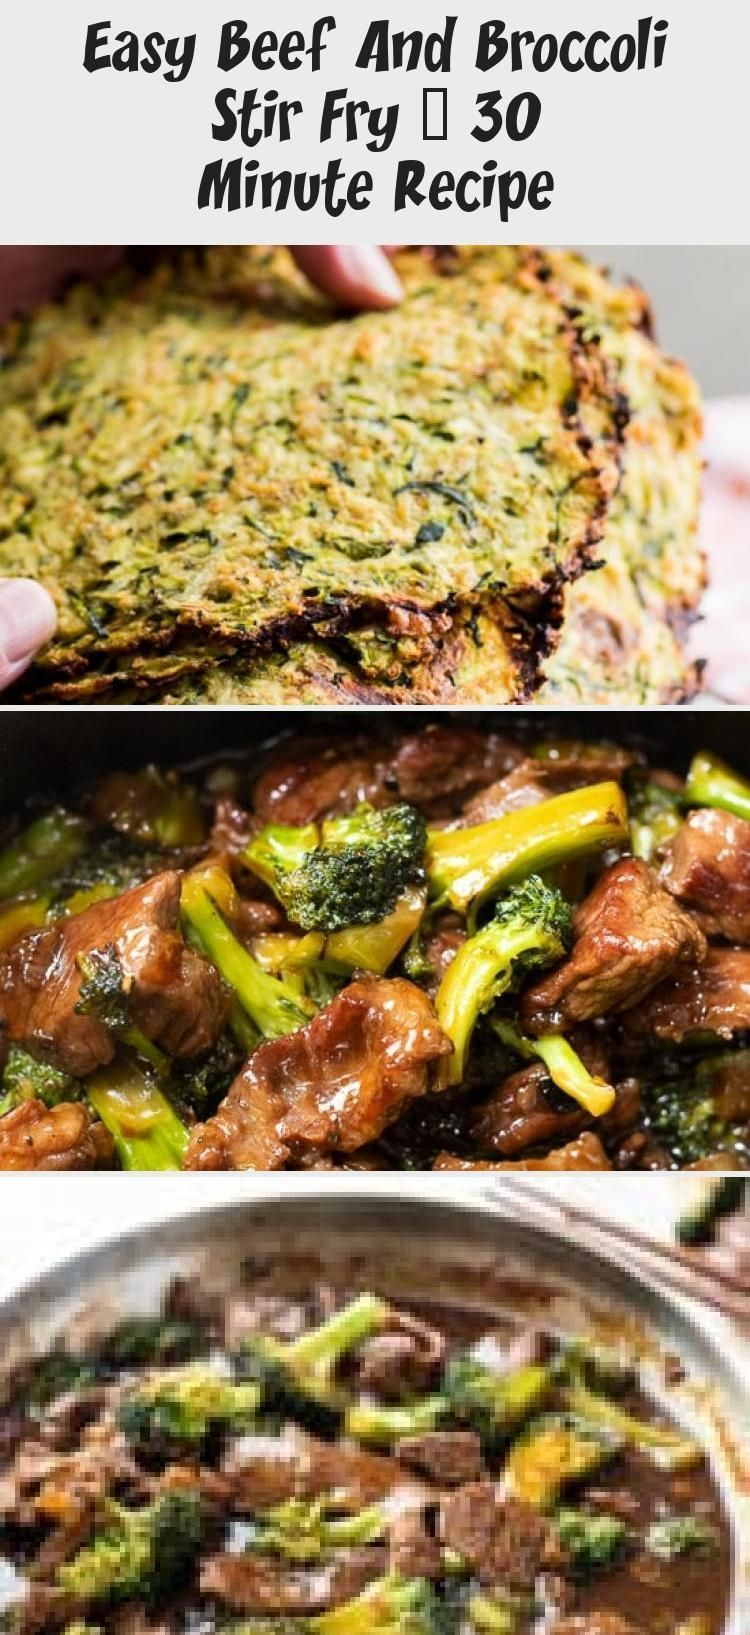 Easy Beef And Broccoli Stir Fry – 30 Minute Recipe #beefandbroccoli Easy recipe for chinese beef and broccoli stir fry. This Chinese broccoli beef s... -    Easy Beef And Broccoli Stir Fry – 30 Minute Recipe #beefandbroccoli Easy recipe for chinese beef and broccoli stir fry. This Chinese broccoli beef stir fried with healthy broccoli for paleo beef and broccoli!  #beef #dinner   The Effective Pictures We Offer You About broccoli vegetable   A quality picture can tell you many things. You can f #beefandbroccoli